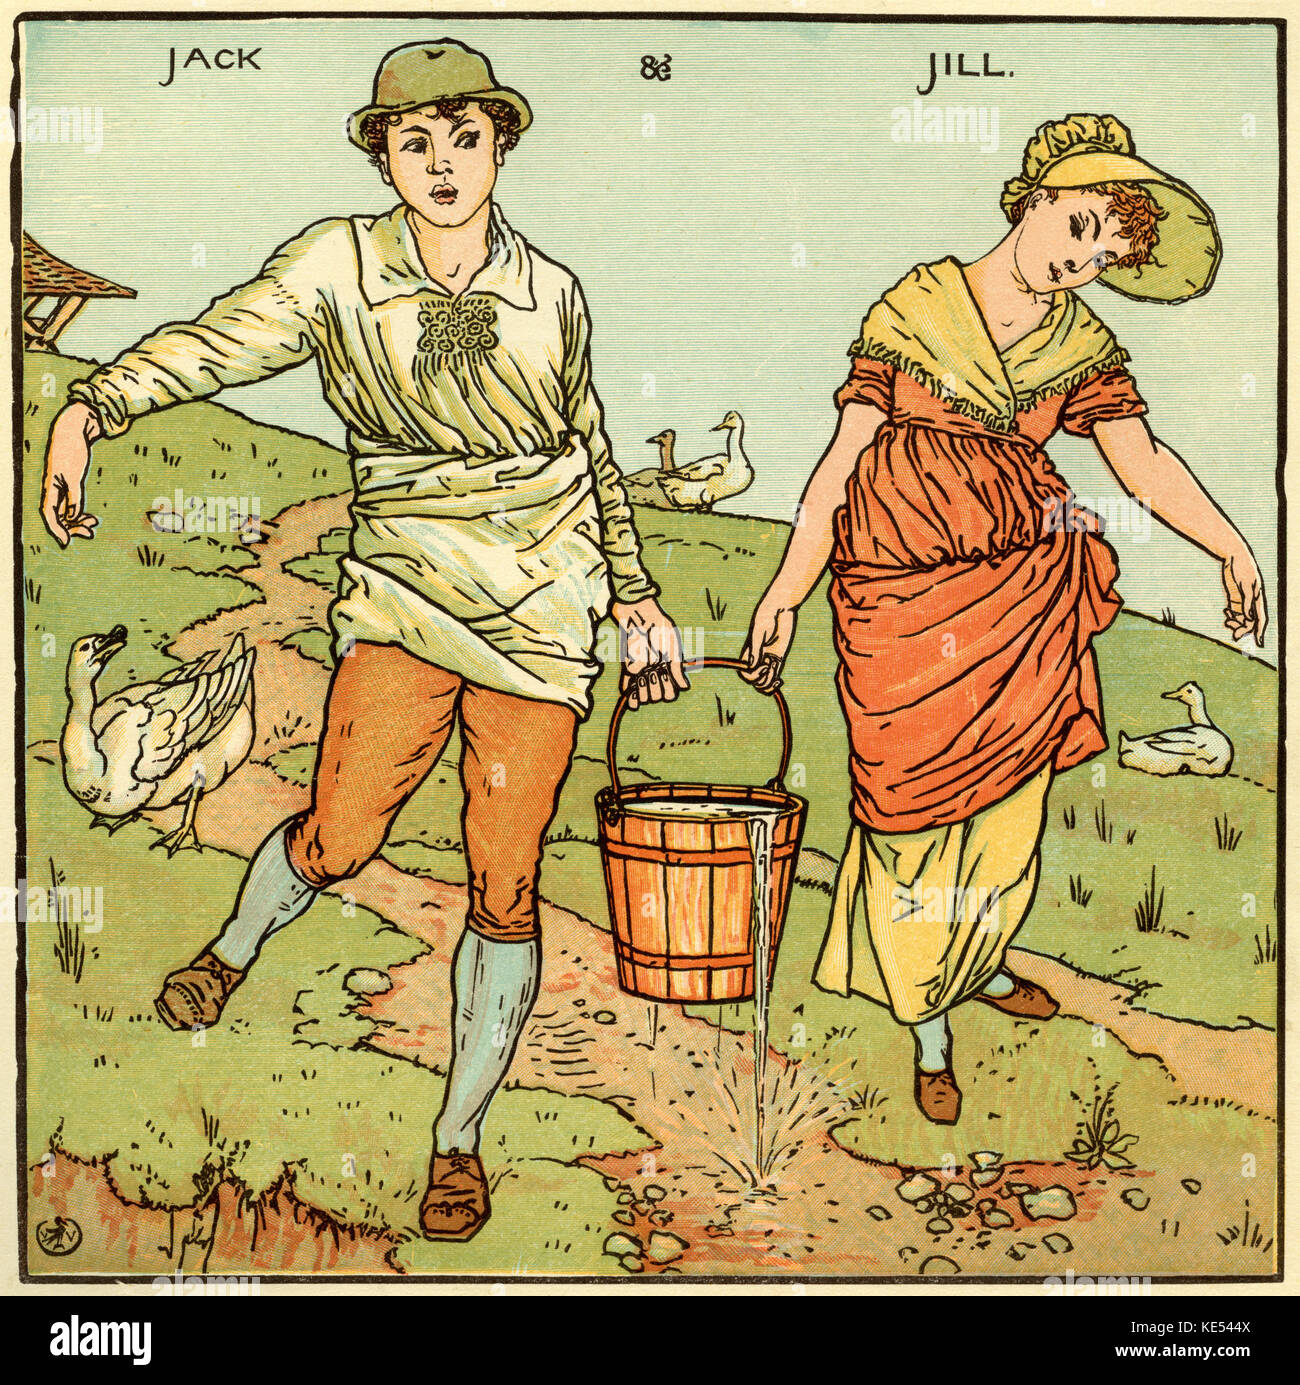 Jack and Jill, nursery rhyme, illustration (1877) by Walter Crane. English artist of Arts and Crafts movement, 15 - Stock Image